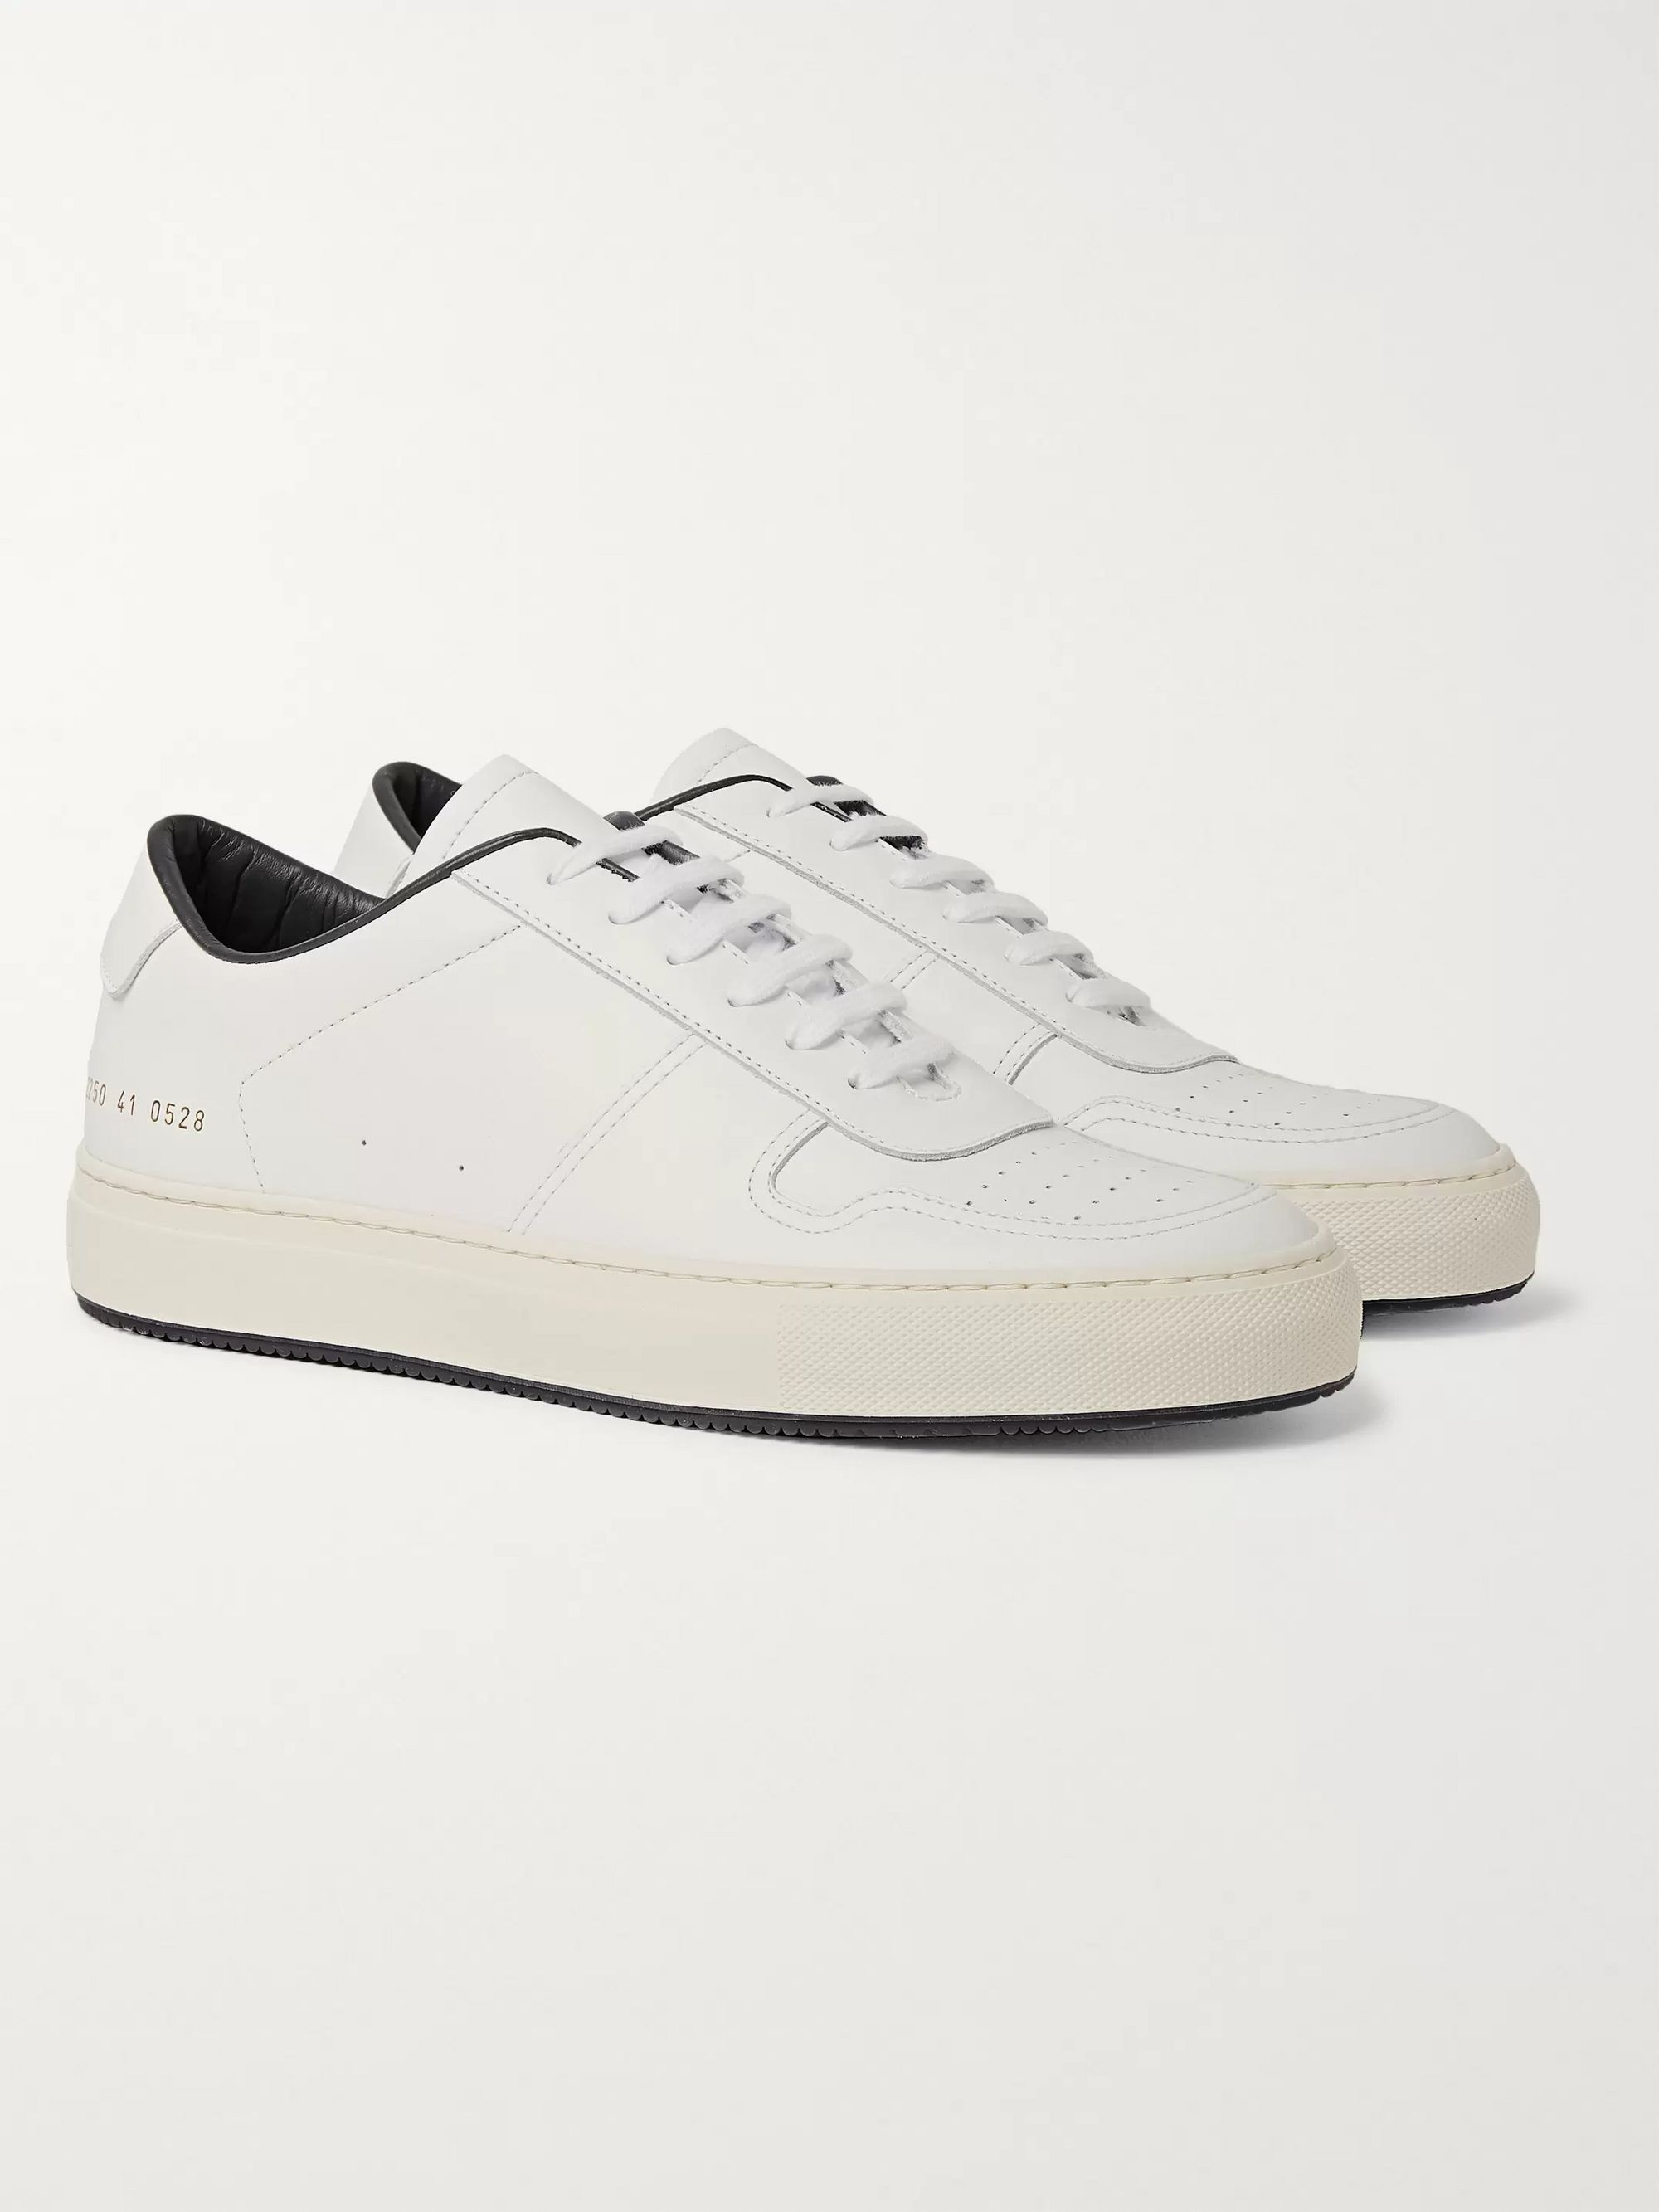 White BBall 88 Leather Sneakers